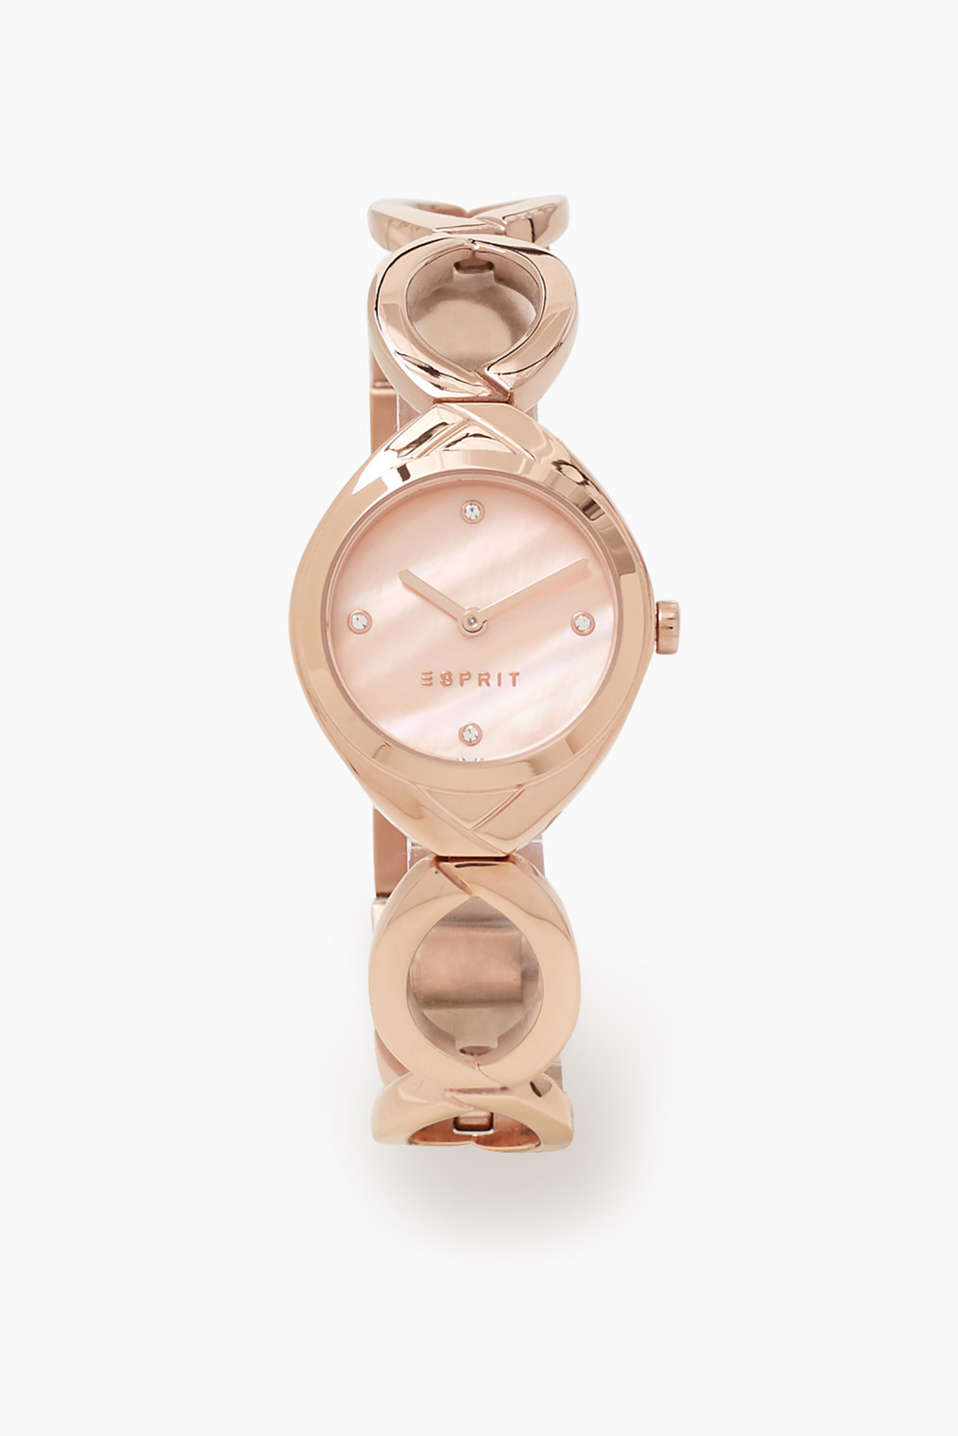 Watch with a dial in a mother-of-pearl look and zirconia, with a distinctive eyelet strap